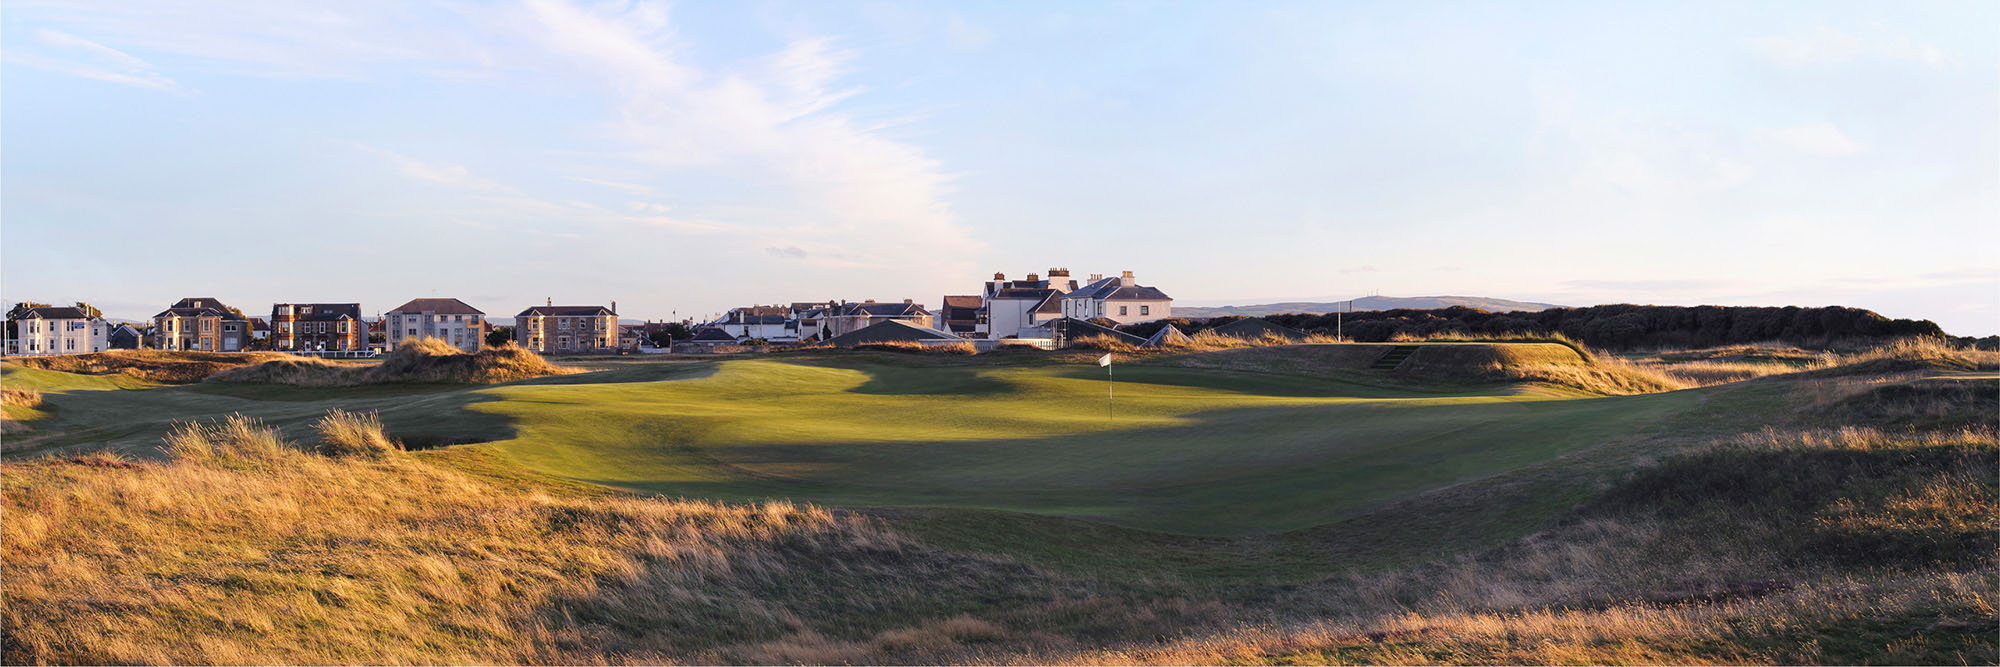 Golf Course Image - Prestwick No. 15